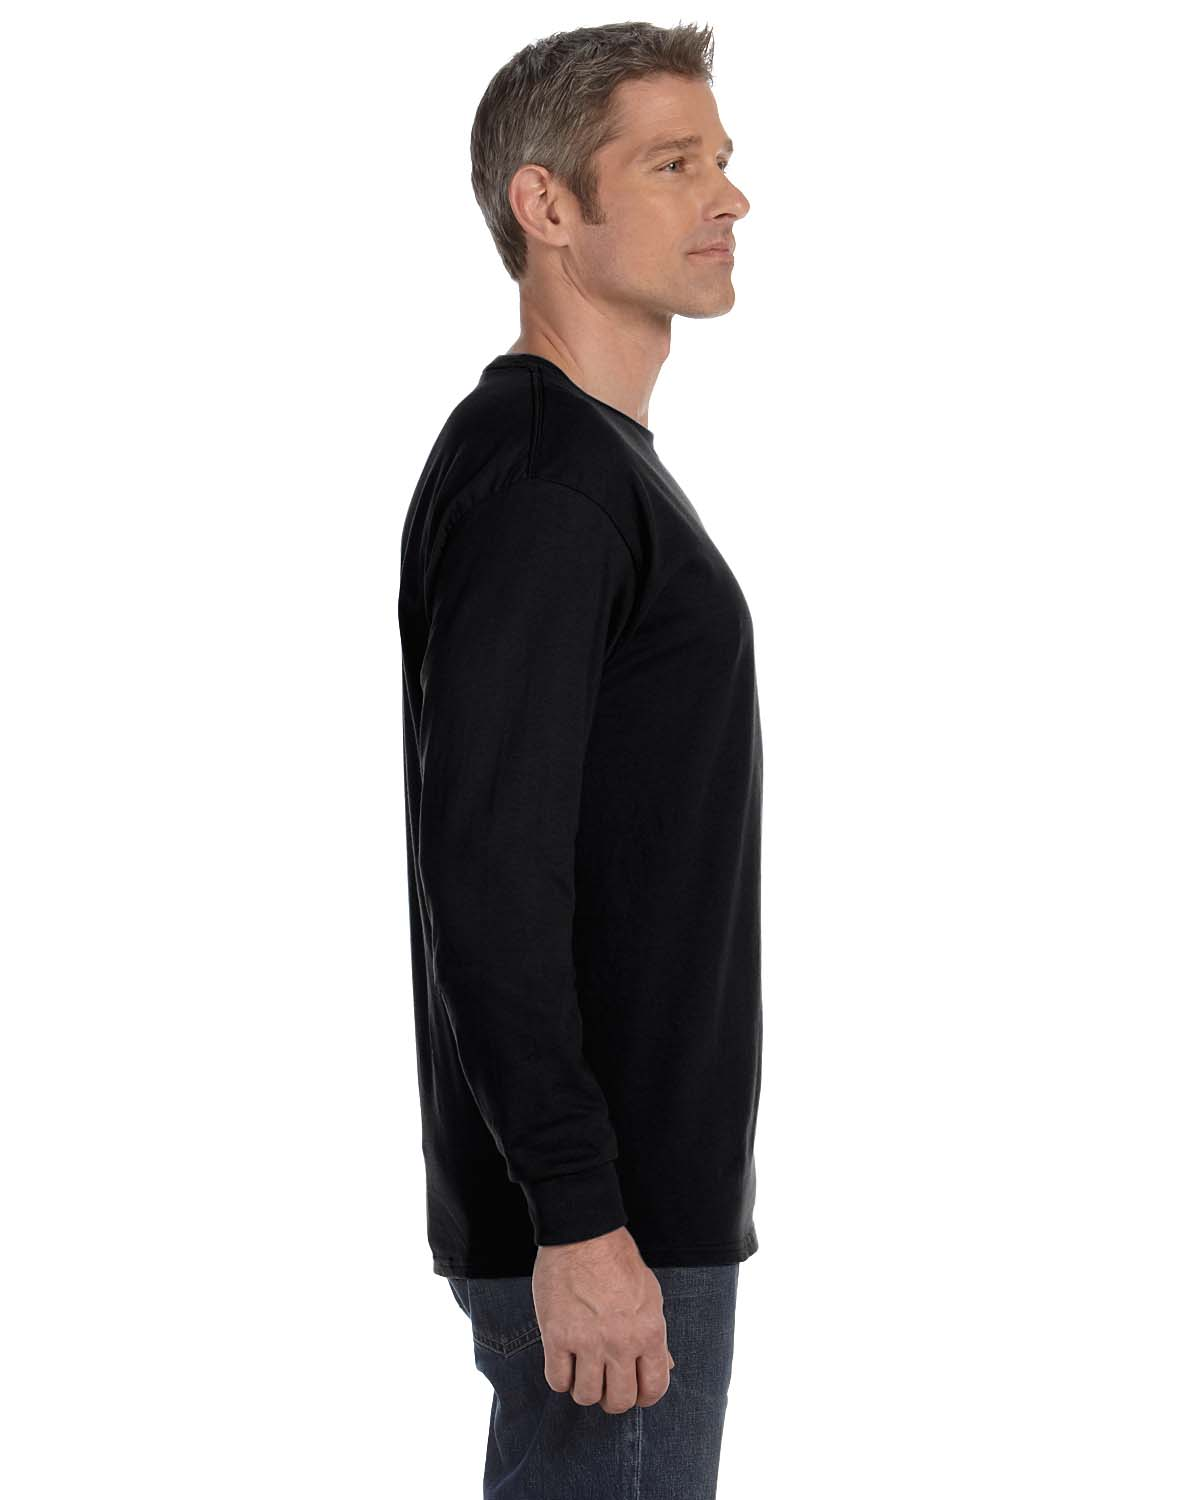 Gildan-Mens-T-Shirt-Long-Sleeve-Heavy-Cotton-5-3-oz-S-XL-R-G540-5400 thumbnail 9